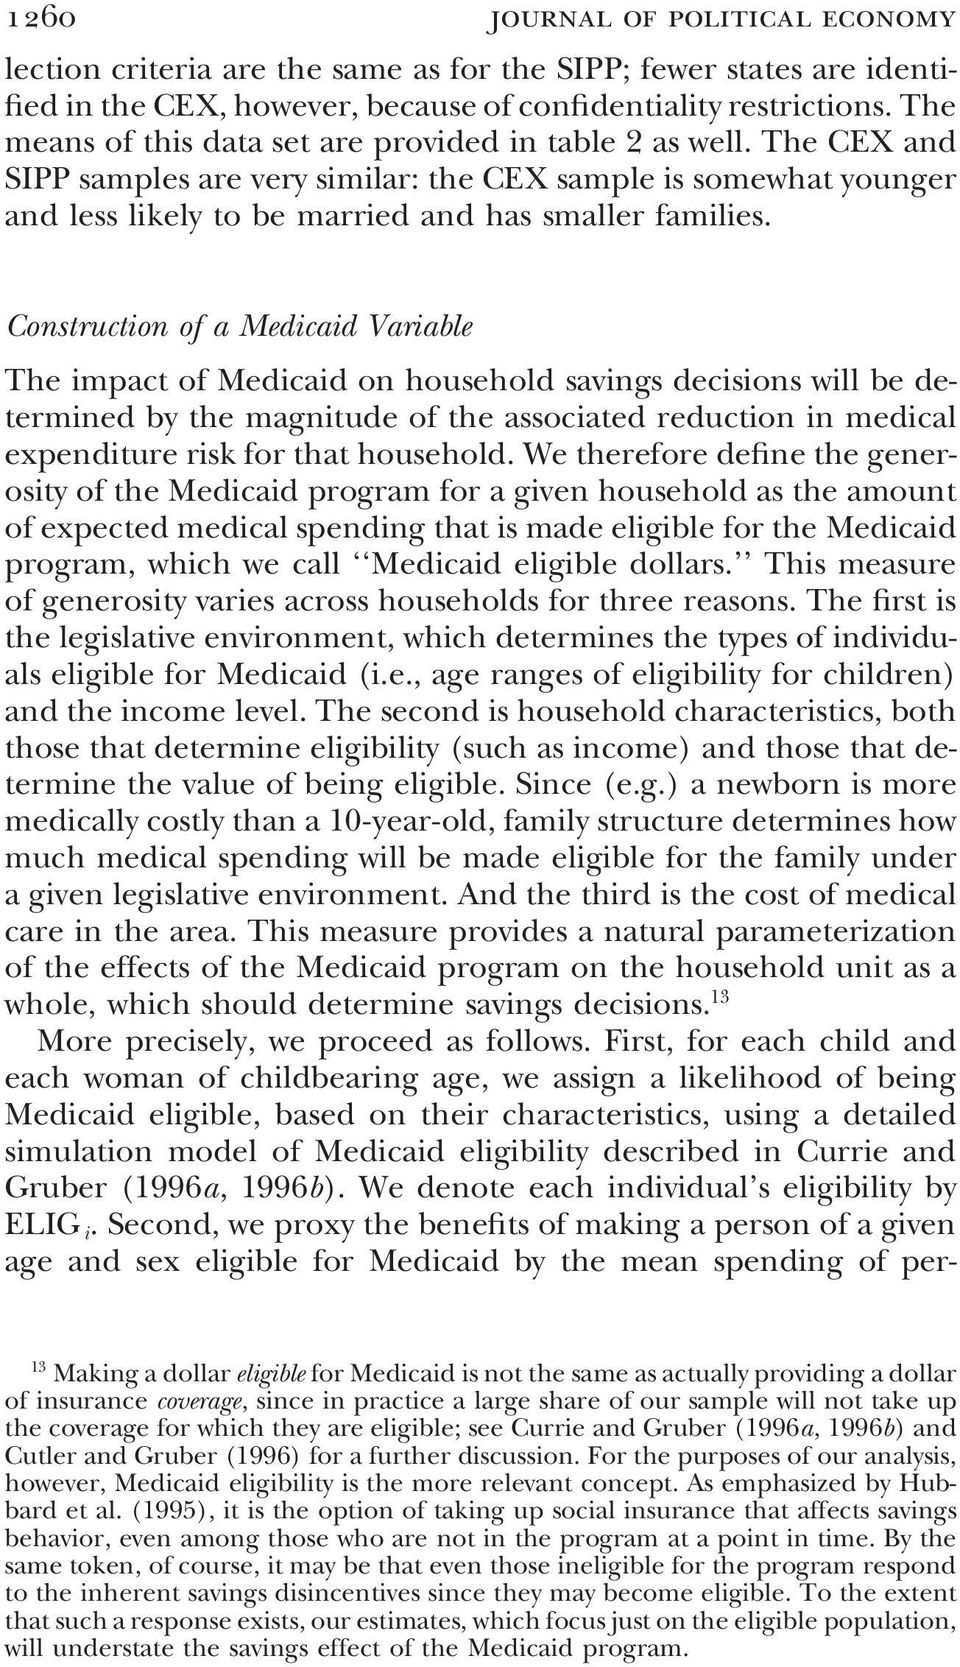 Construction of a Medicaid Variable The impact of Medicaid on household savings decisions will be determined by the magnitude of the associated reduction in medical expenditure risk for that